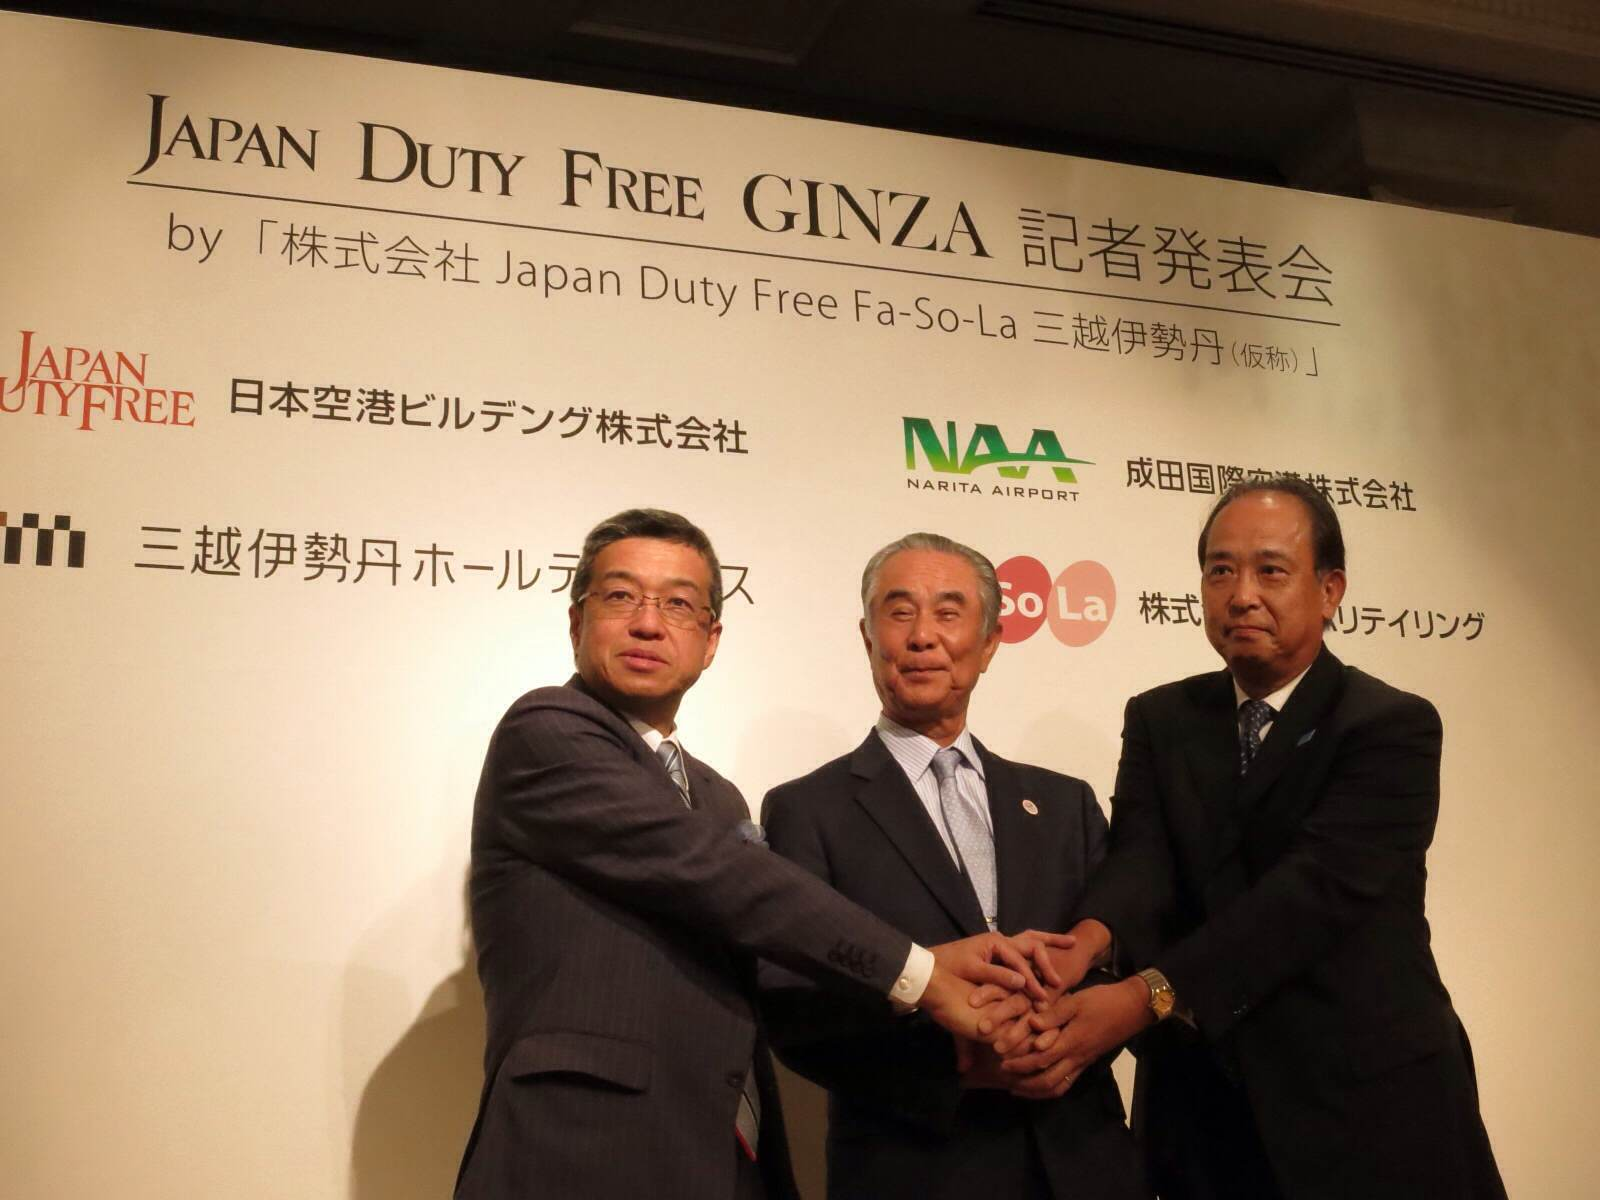 Isetan Japan Duty Free Ginza Tokyo opening Ceremony